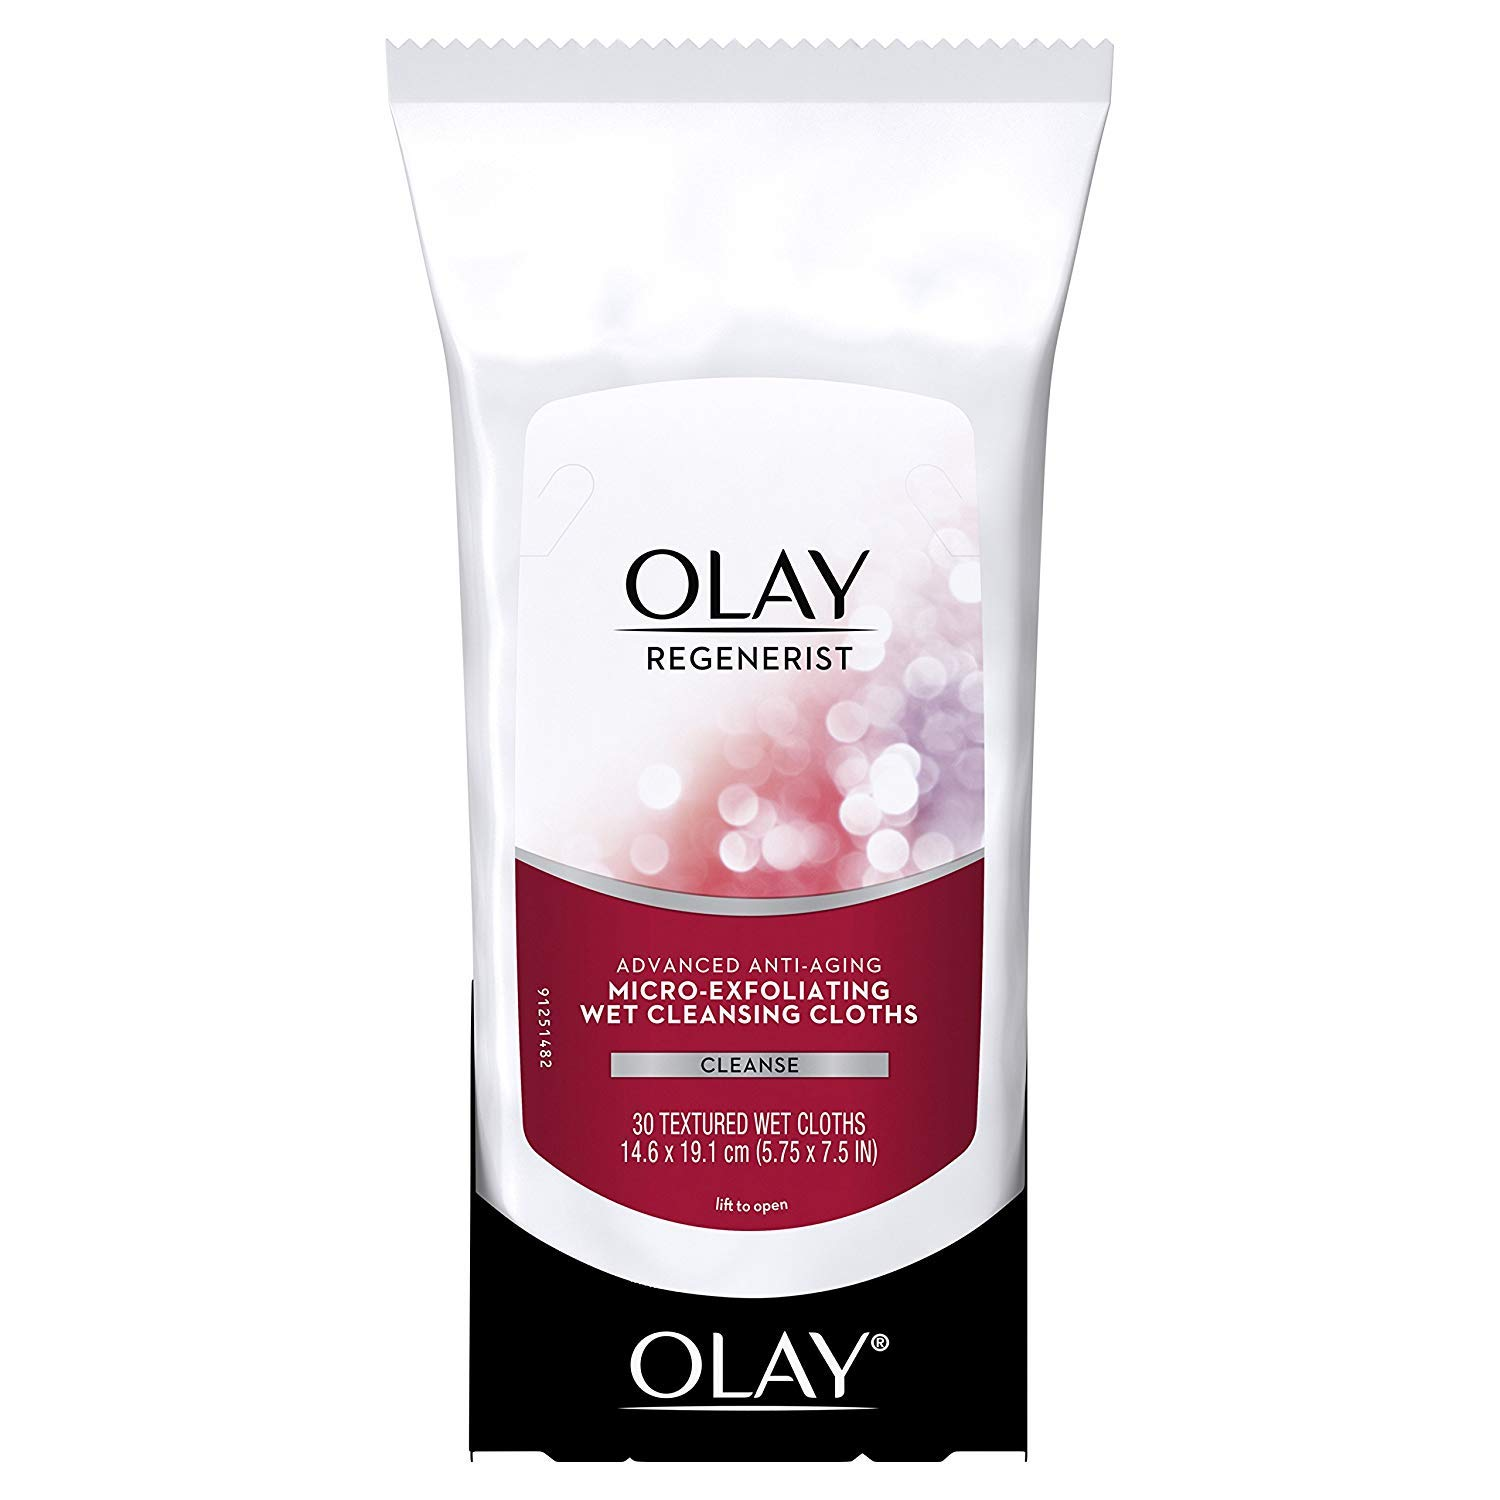 OLAY Regenerist Advanced Anti-Aging Micro-Exfoliating Cleansing Cloths 30 Each (Pack of 4)